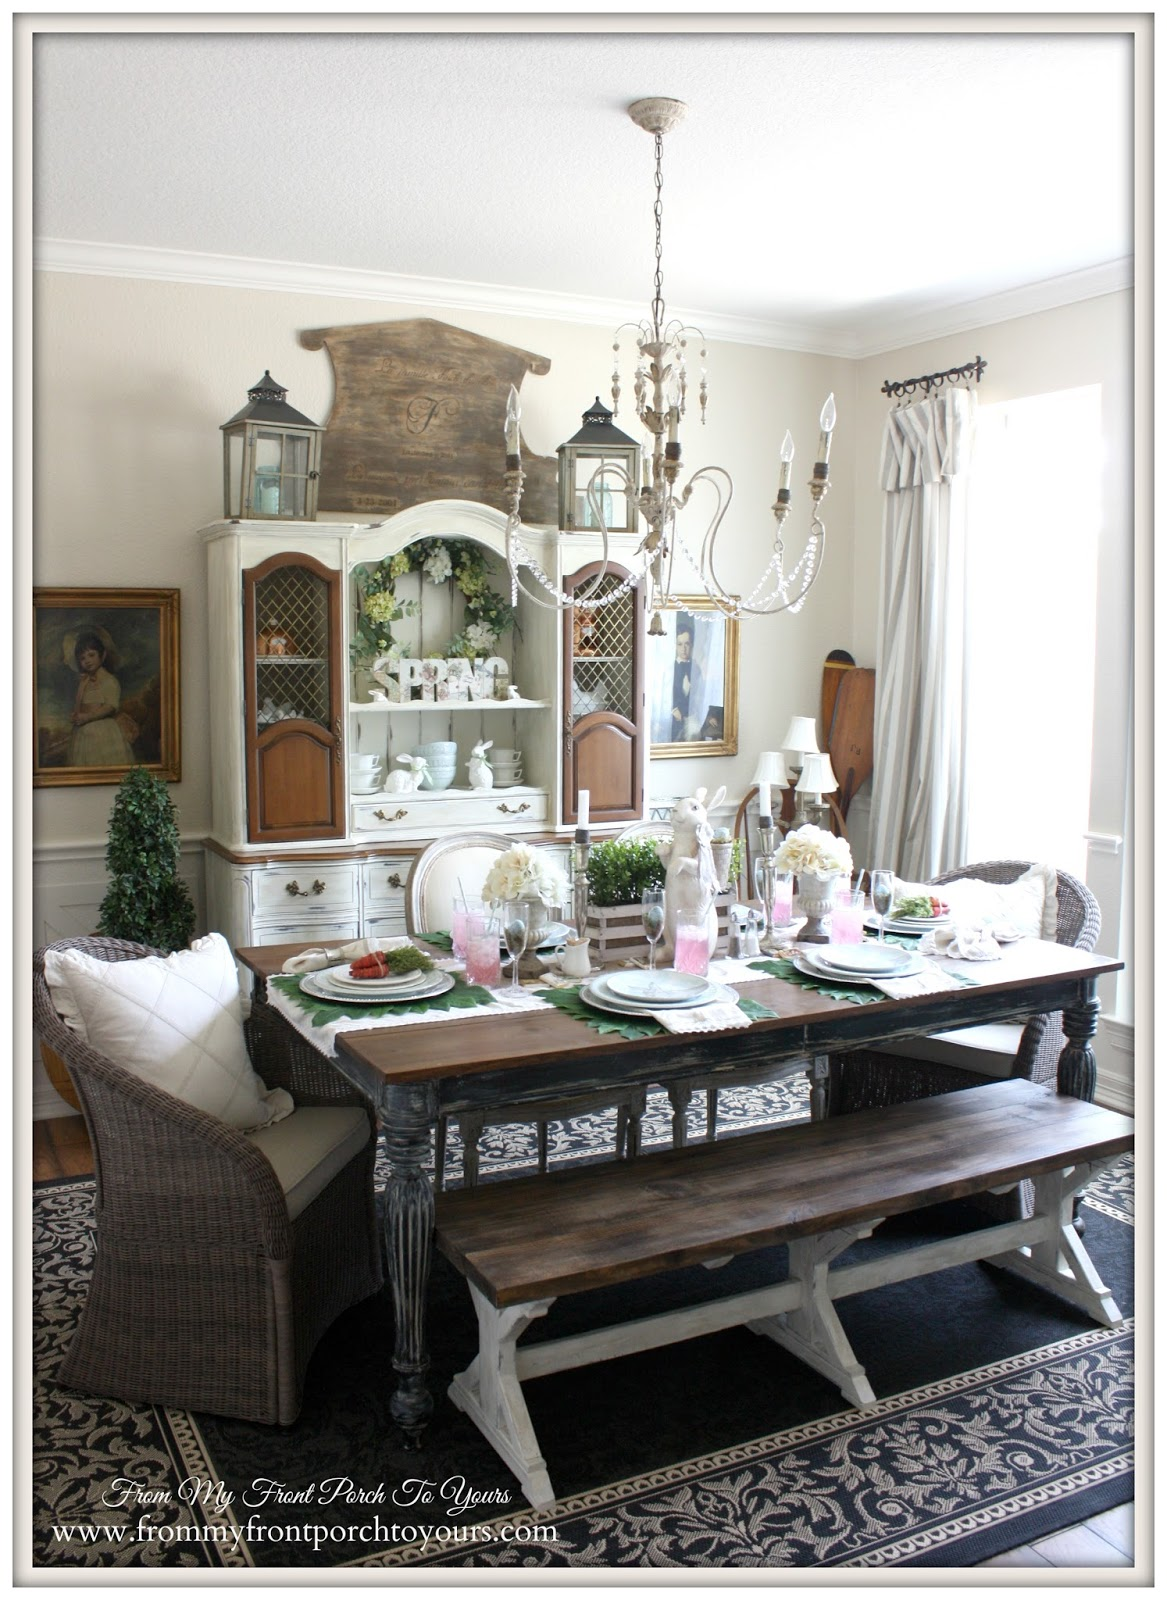 French Farmhouse Easter Dining Room-Full View- From My Front Porch To Yours